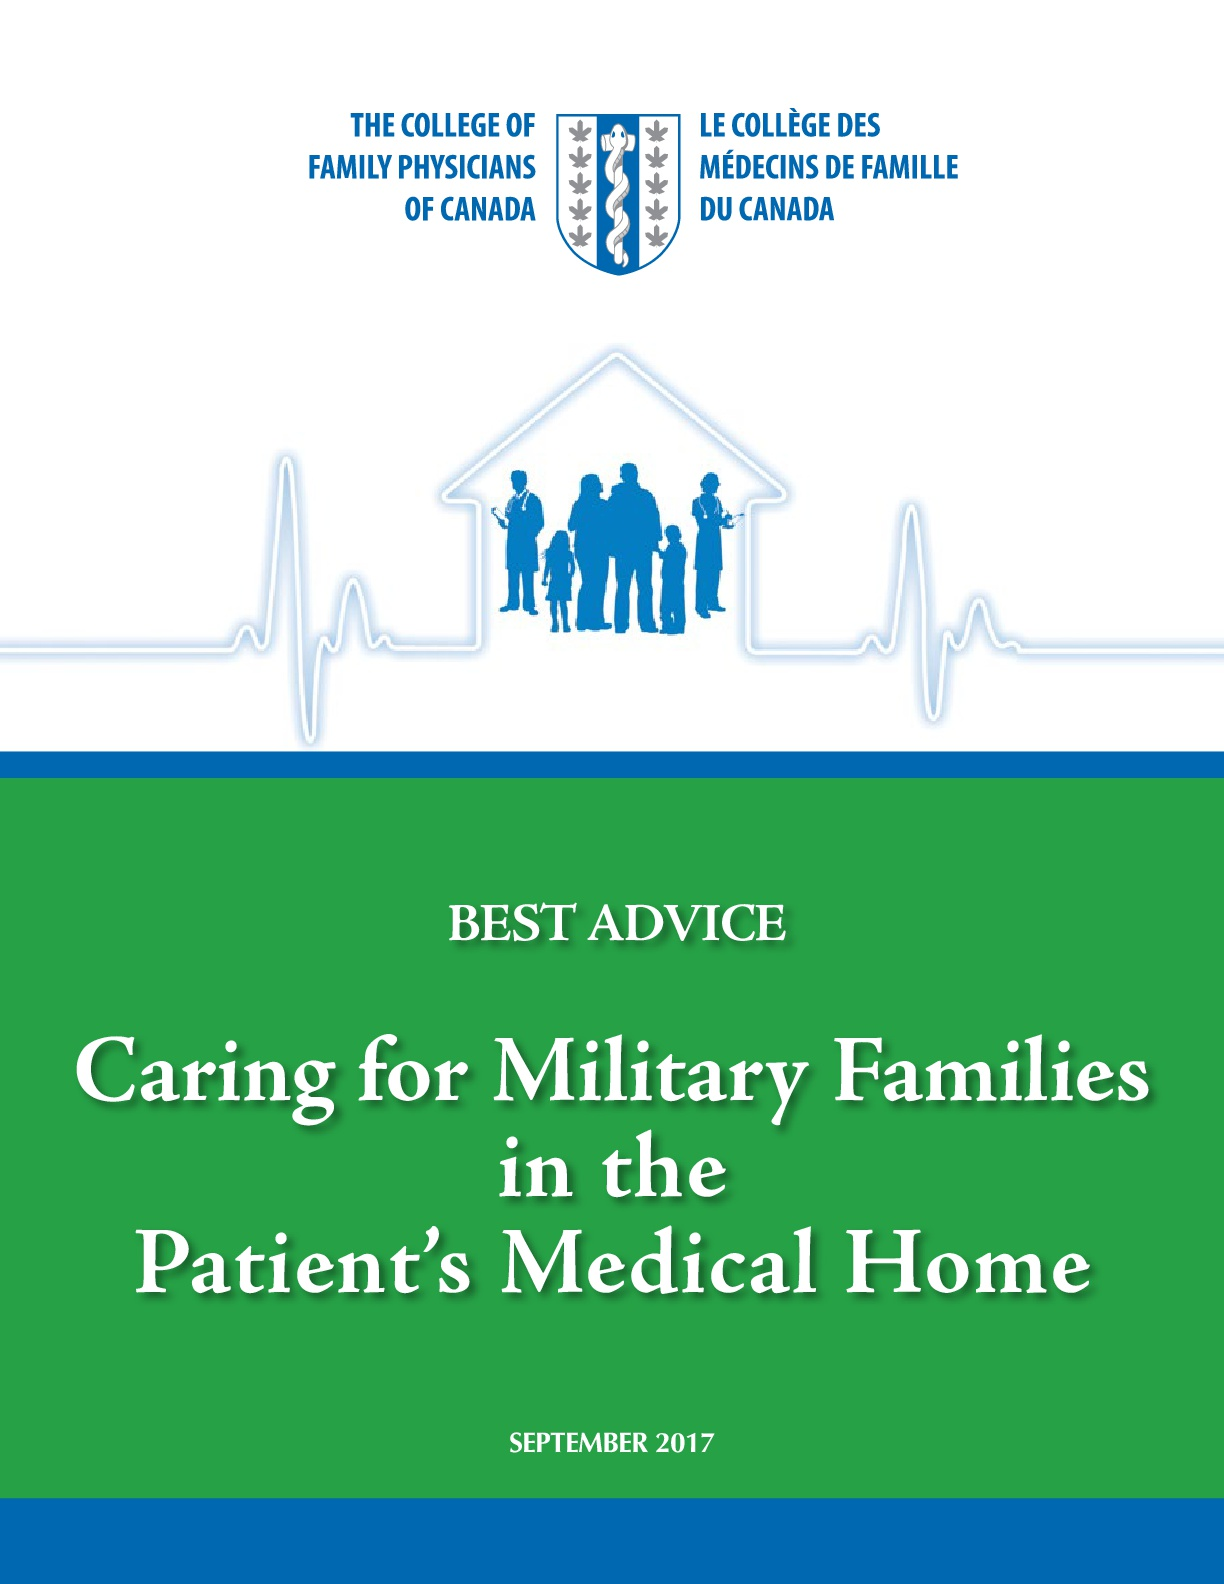 Best Advice Guide: Caring for Military Families in the Patient's Medical Home